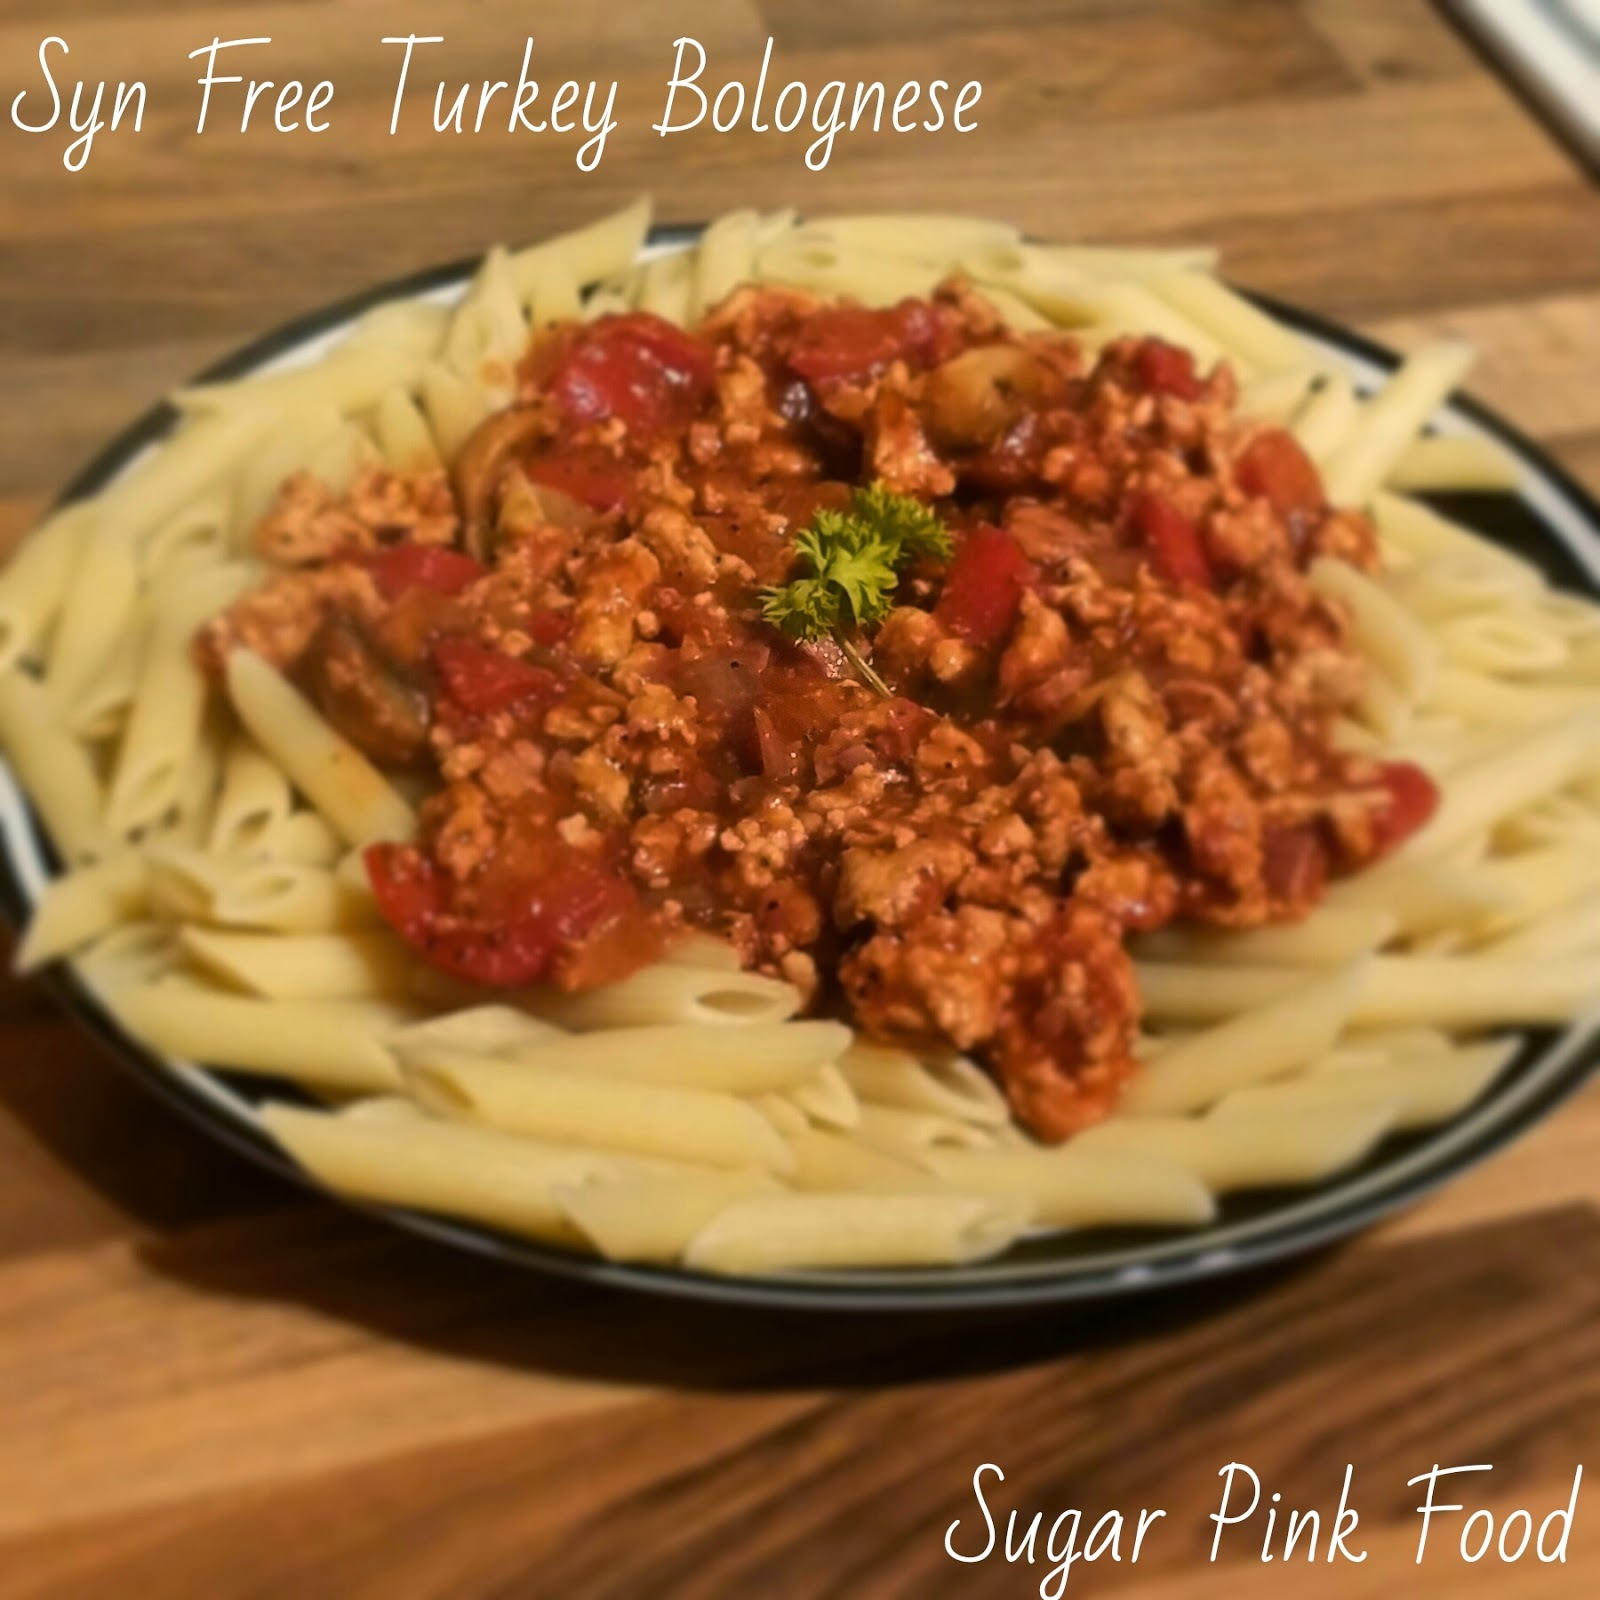 Slimming World Recipe: Syn Free Turkey Bolognese